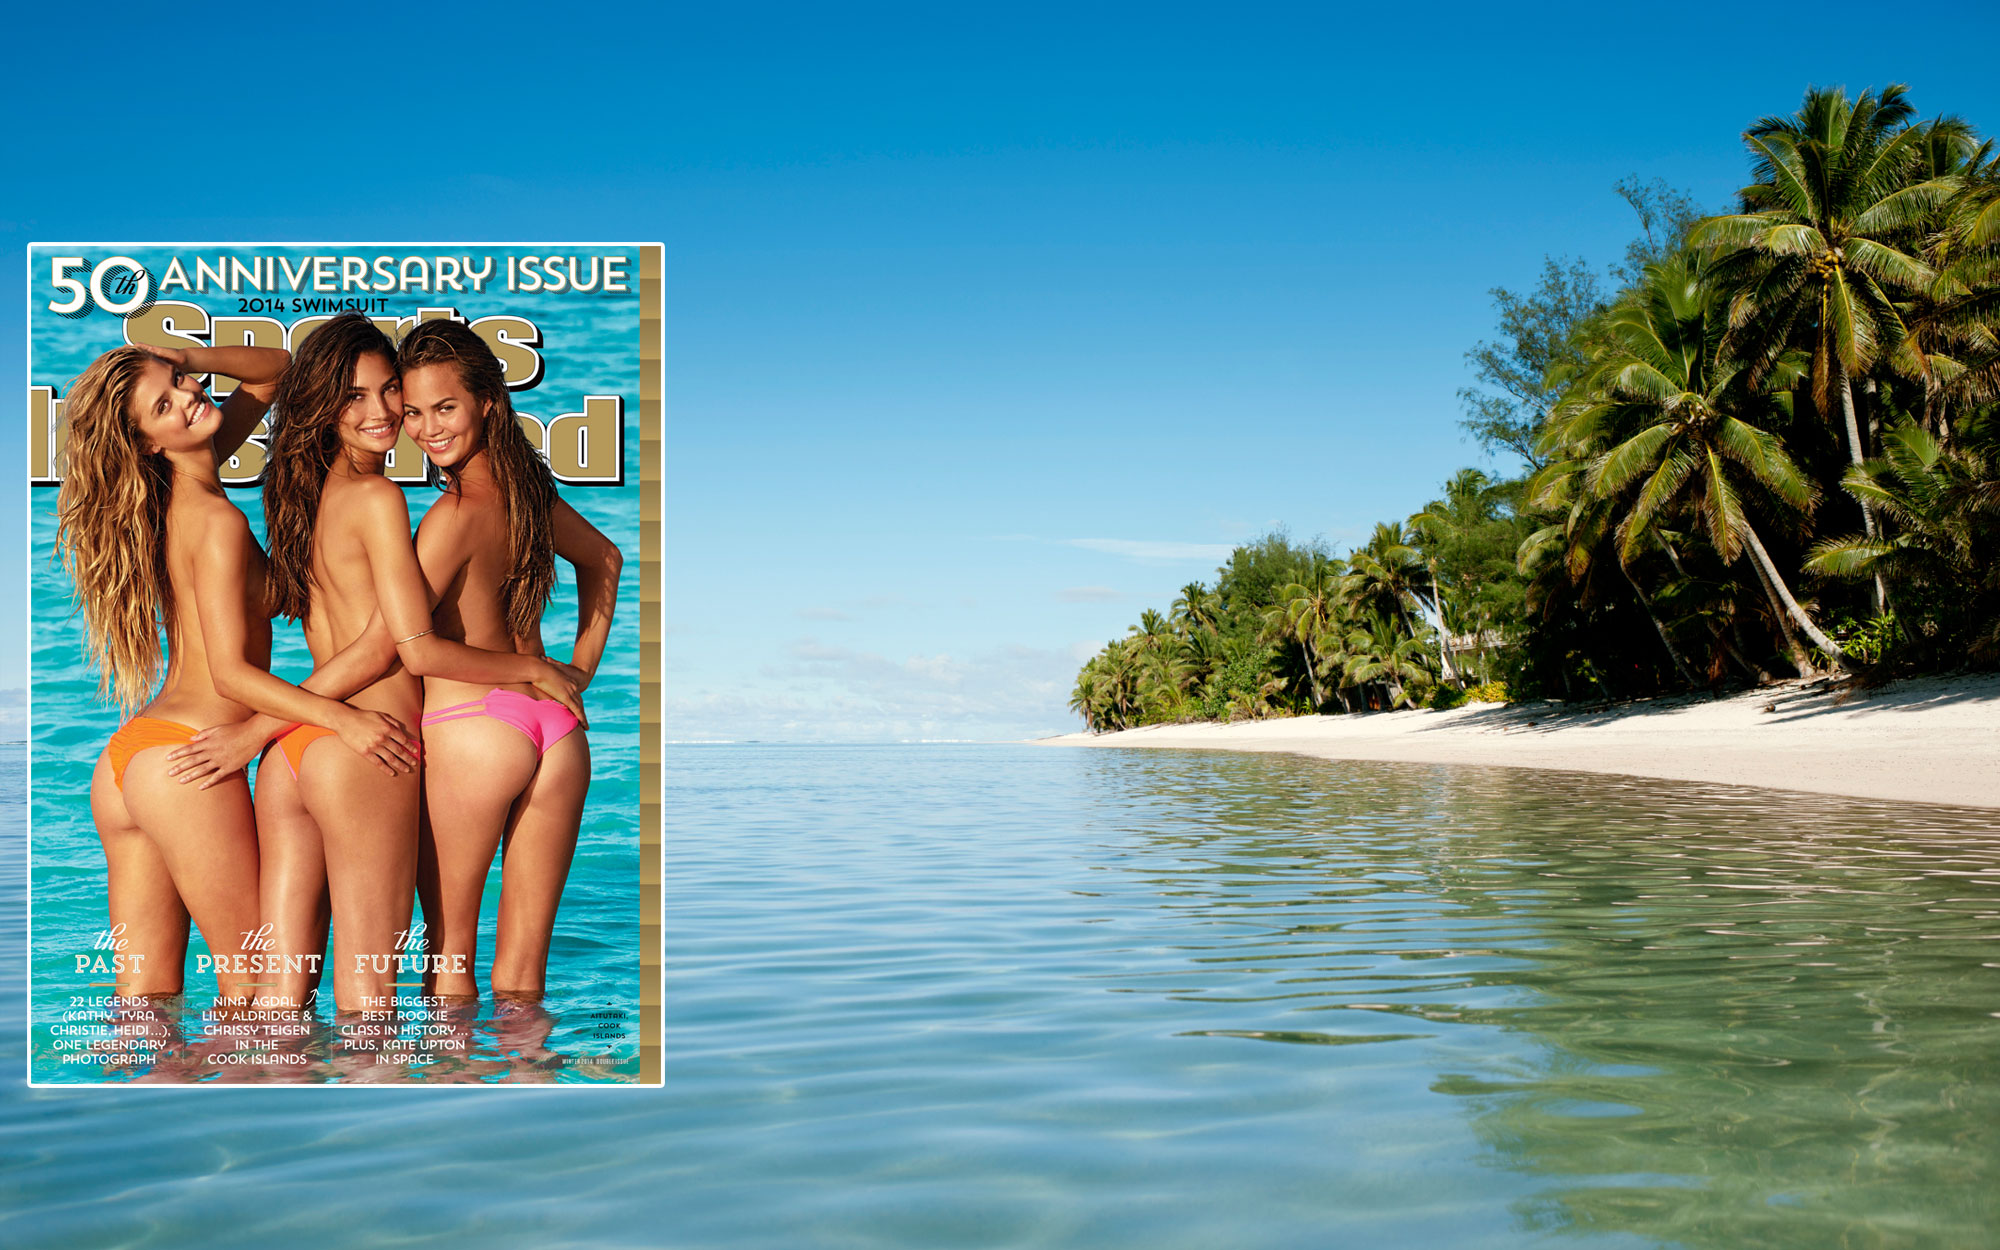 SI Swimsuit 2014: Rarotonga, Cook Islands, New Zealand